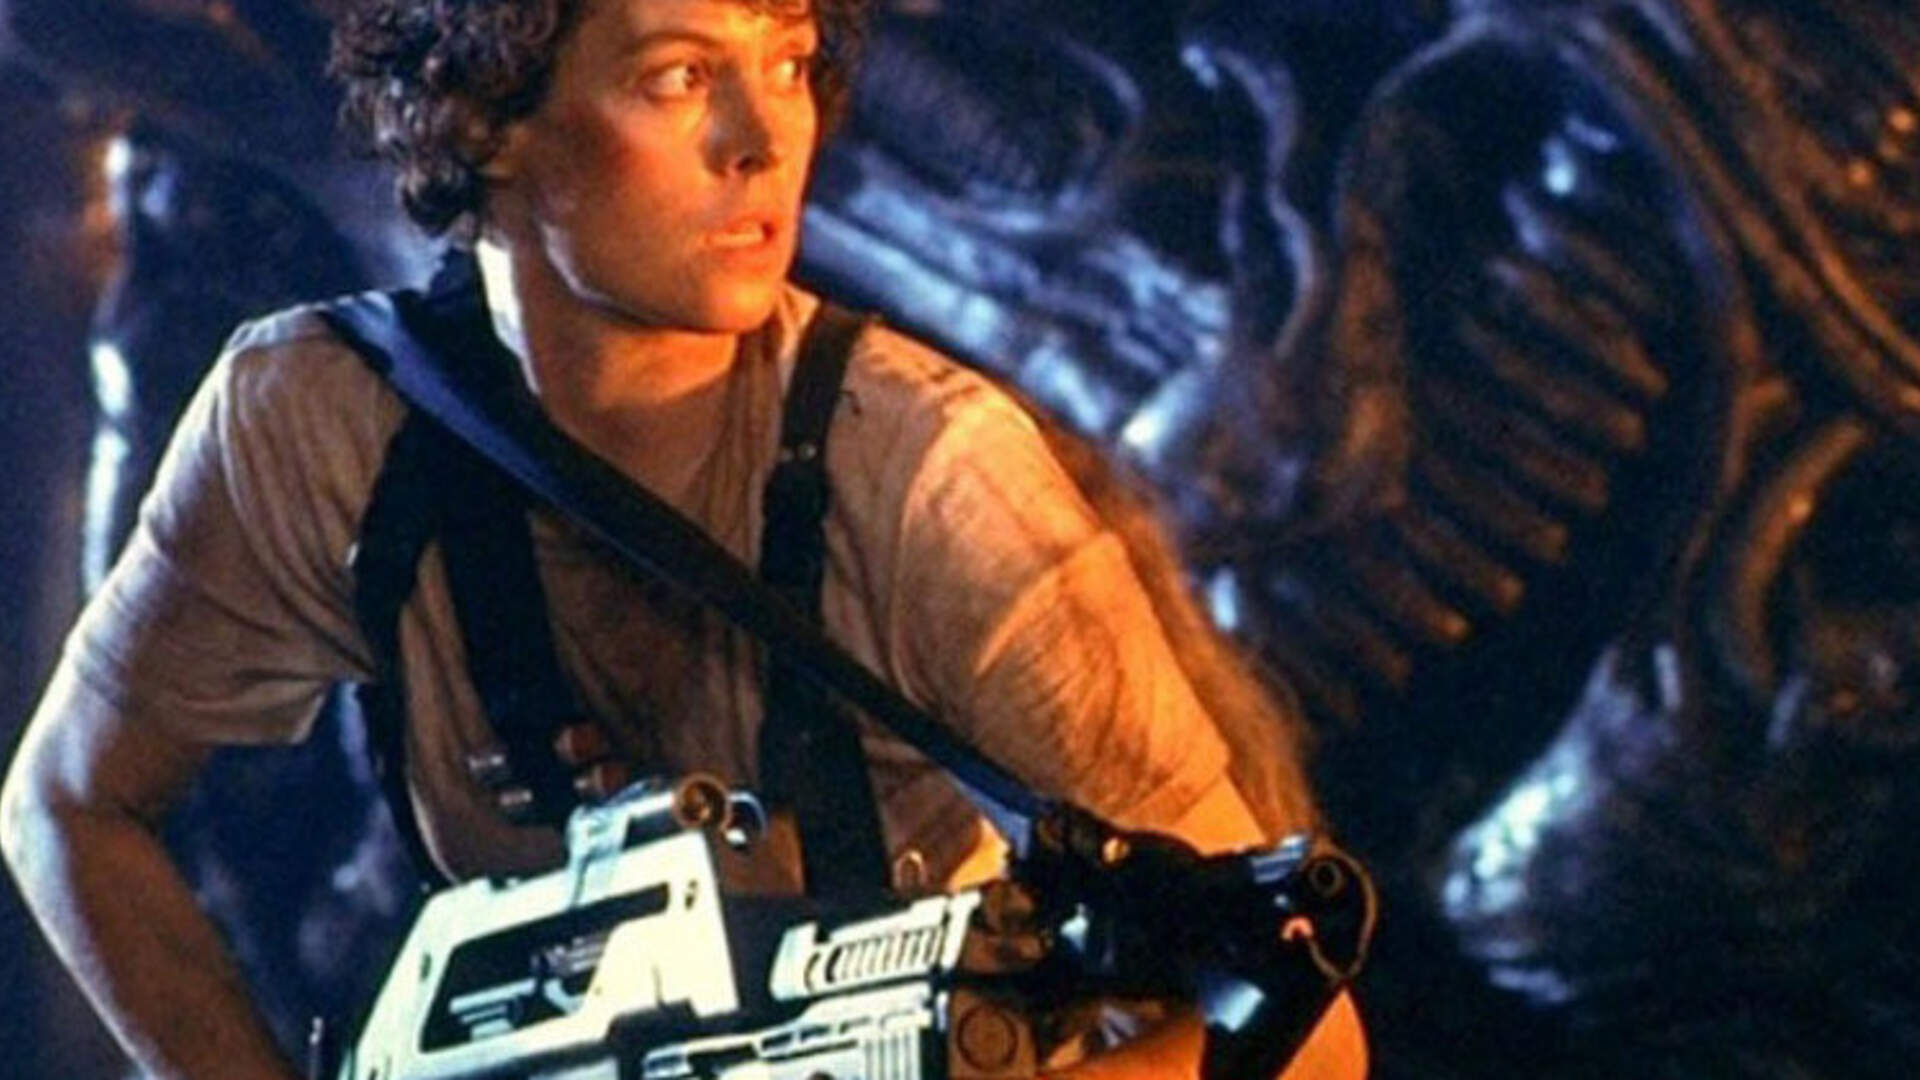 Could Other Alien Movies Make a Great Video Game, Too?